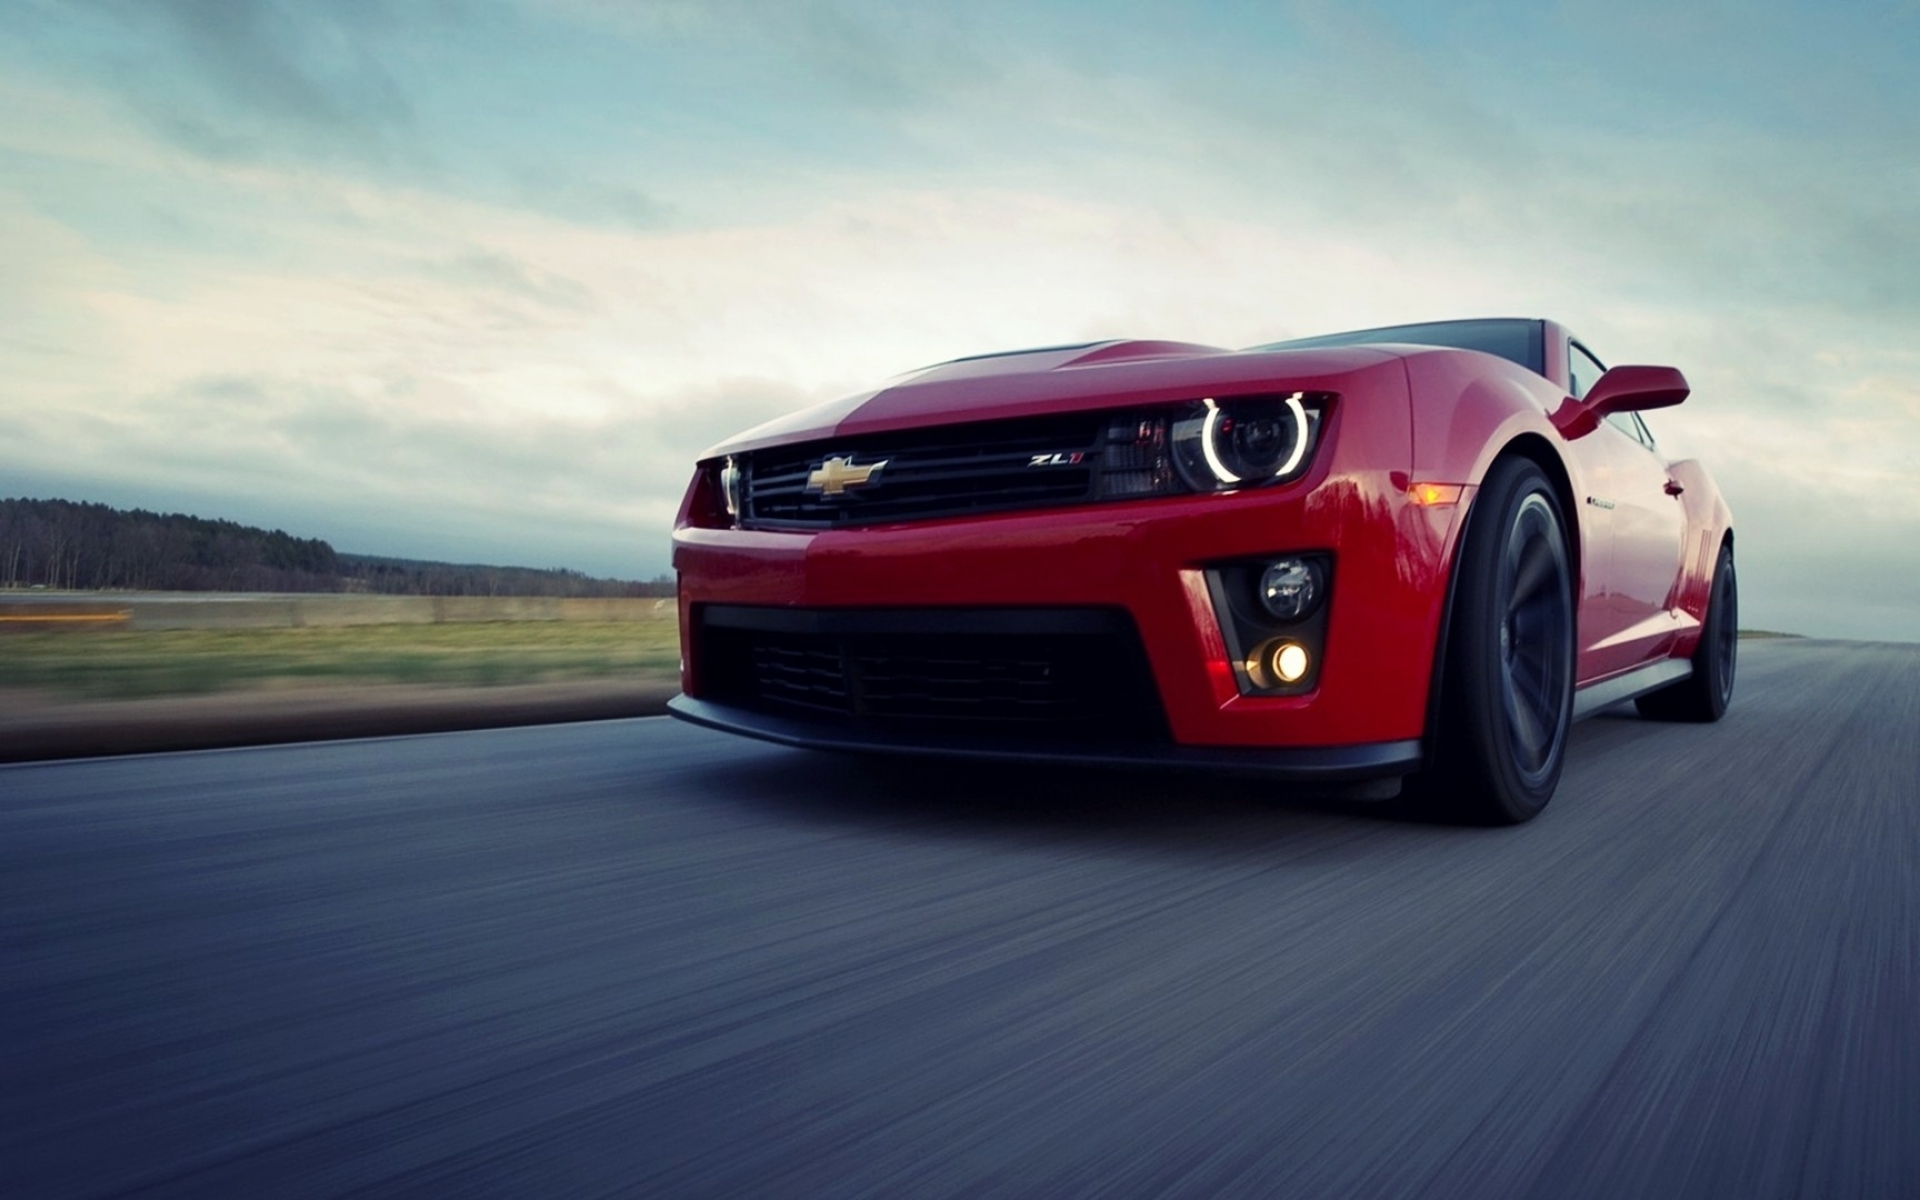 chevrolet camaro zl1 automobile Wallpaper Wallpapers Download 1920x1200